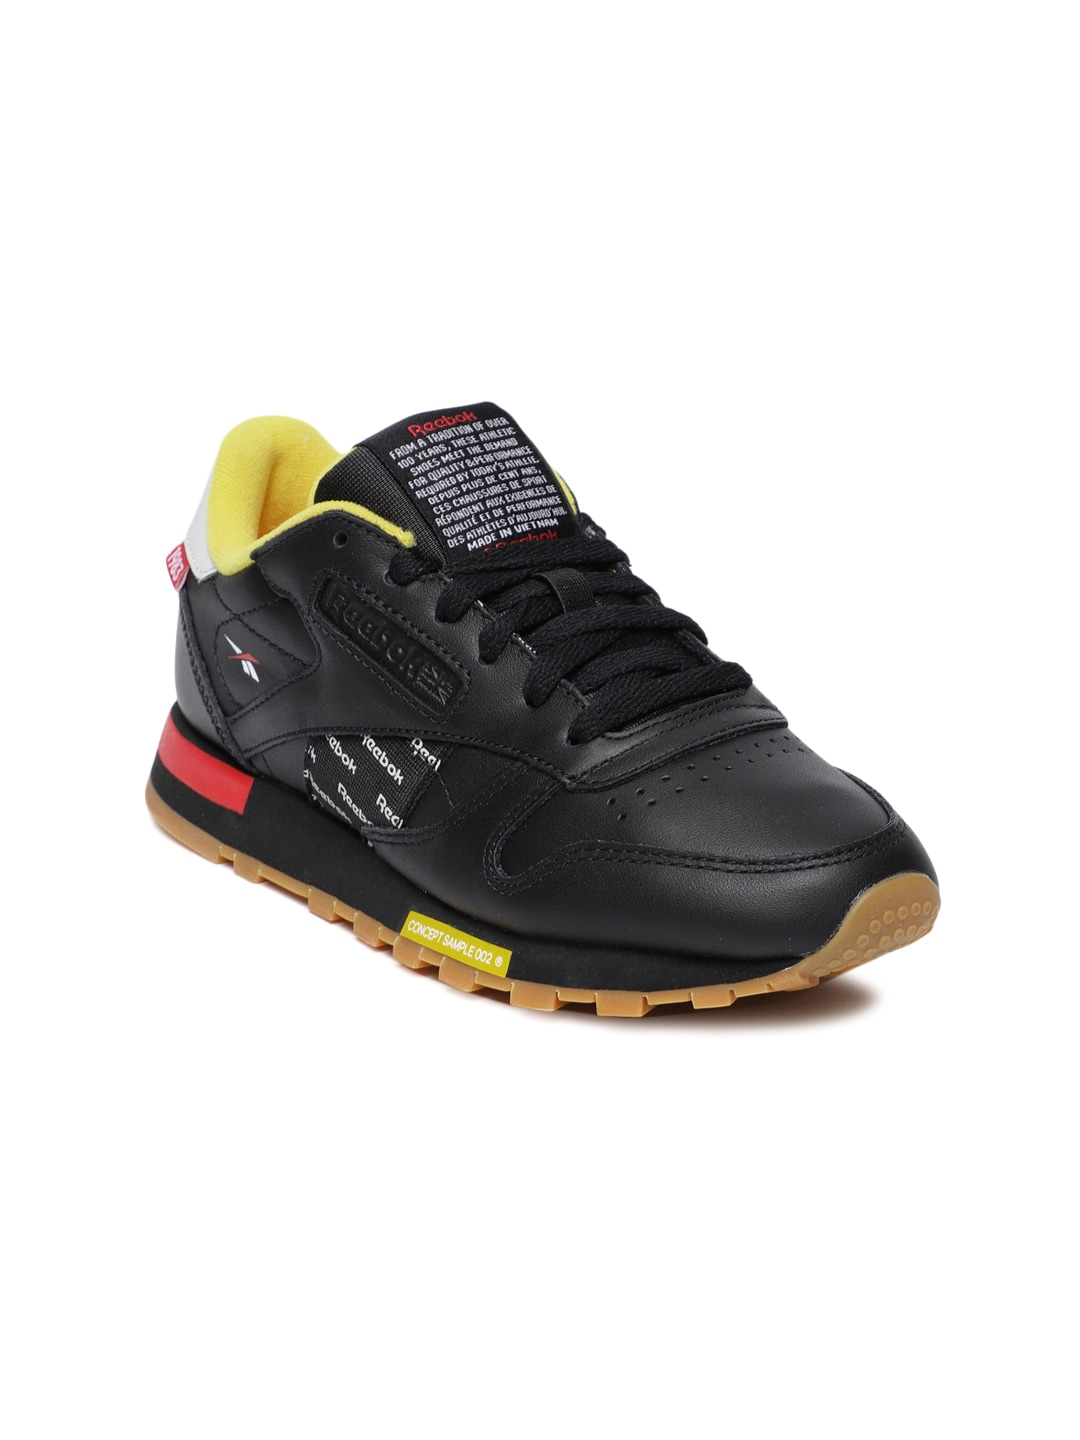 c79dbff4b207 Reebok Leather Shoes - Buy Reebok Leather Shoes online in India